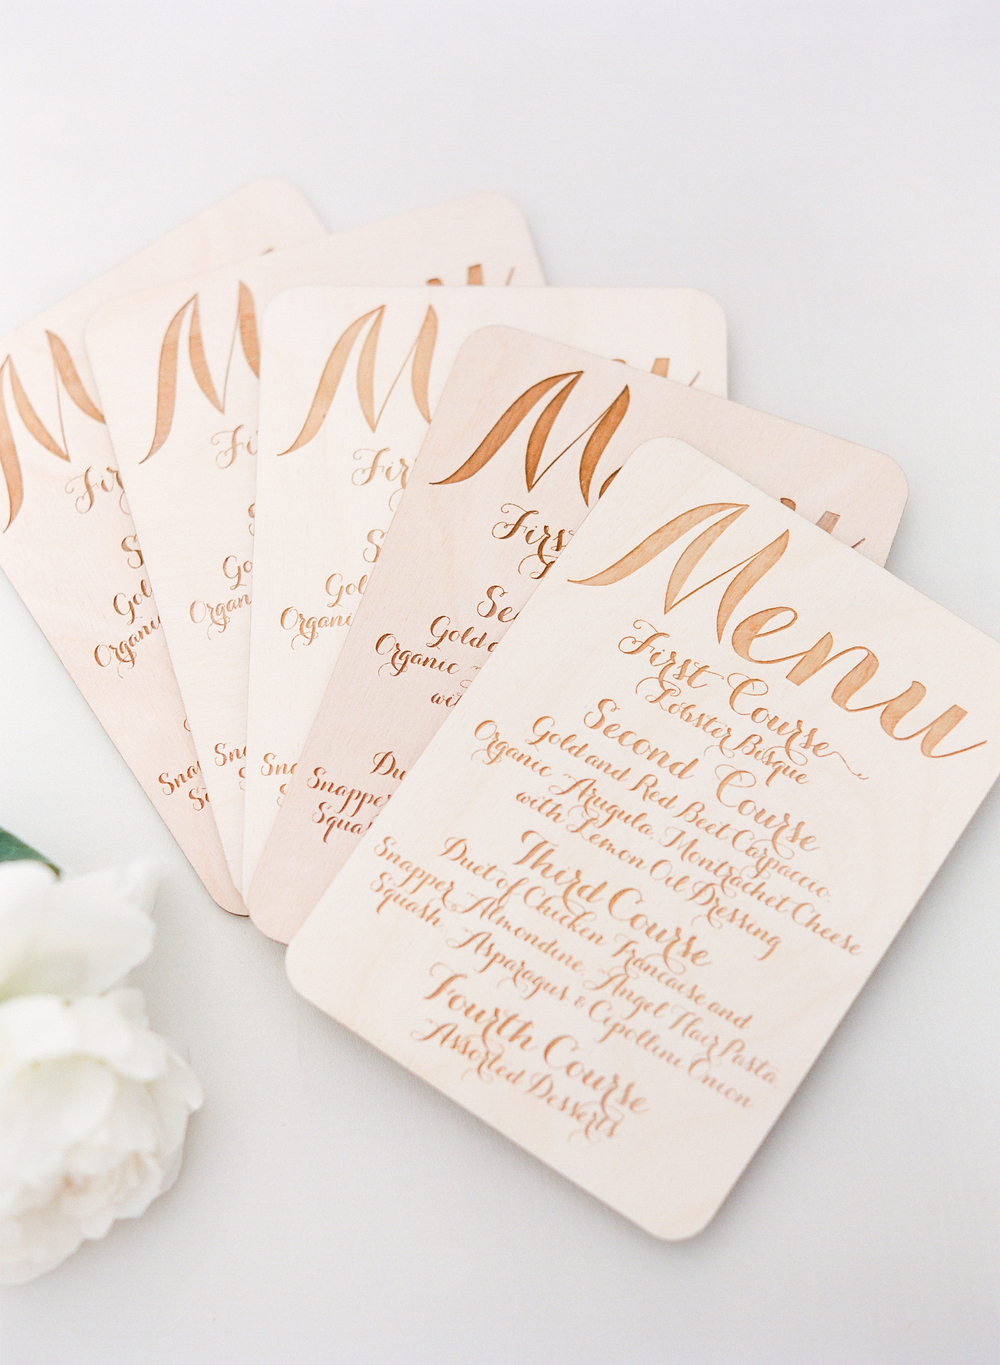 Ceci_New_York_Florida_Wedding_Style_Bride_Watercolor_Real_Custom_Luxury_28.jpg